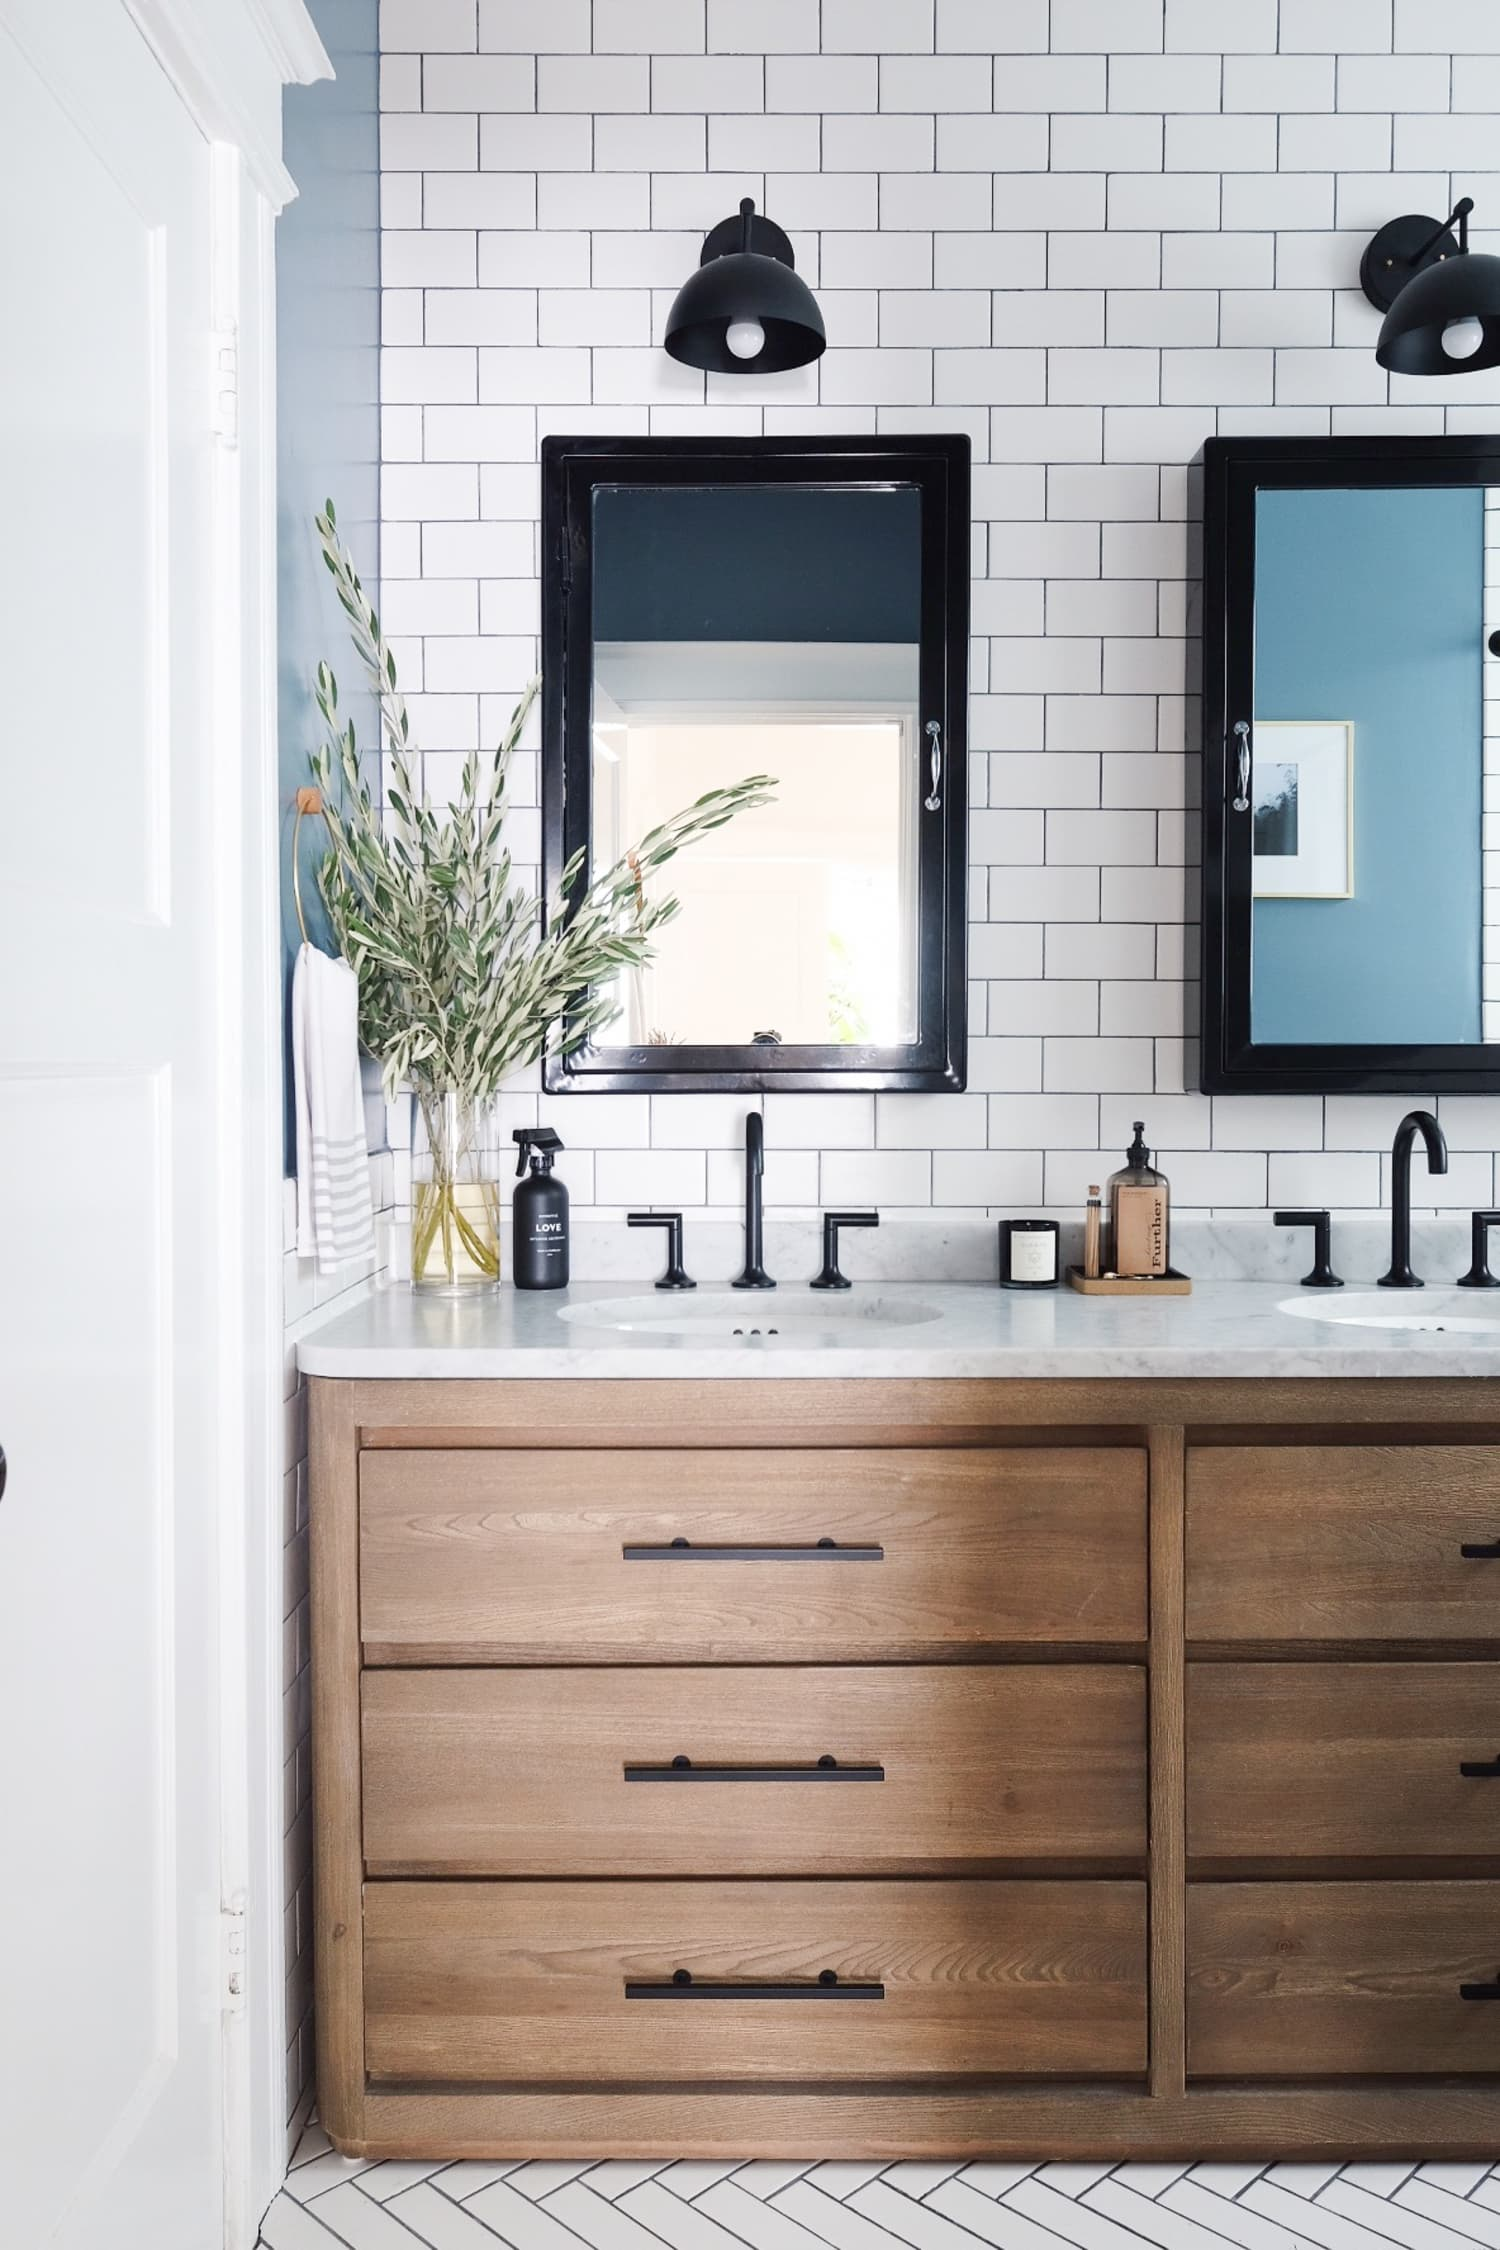 The 10 Commandments of a Luxe-Looking Bathroom